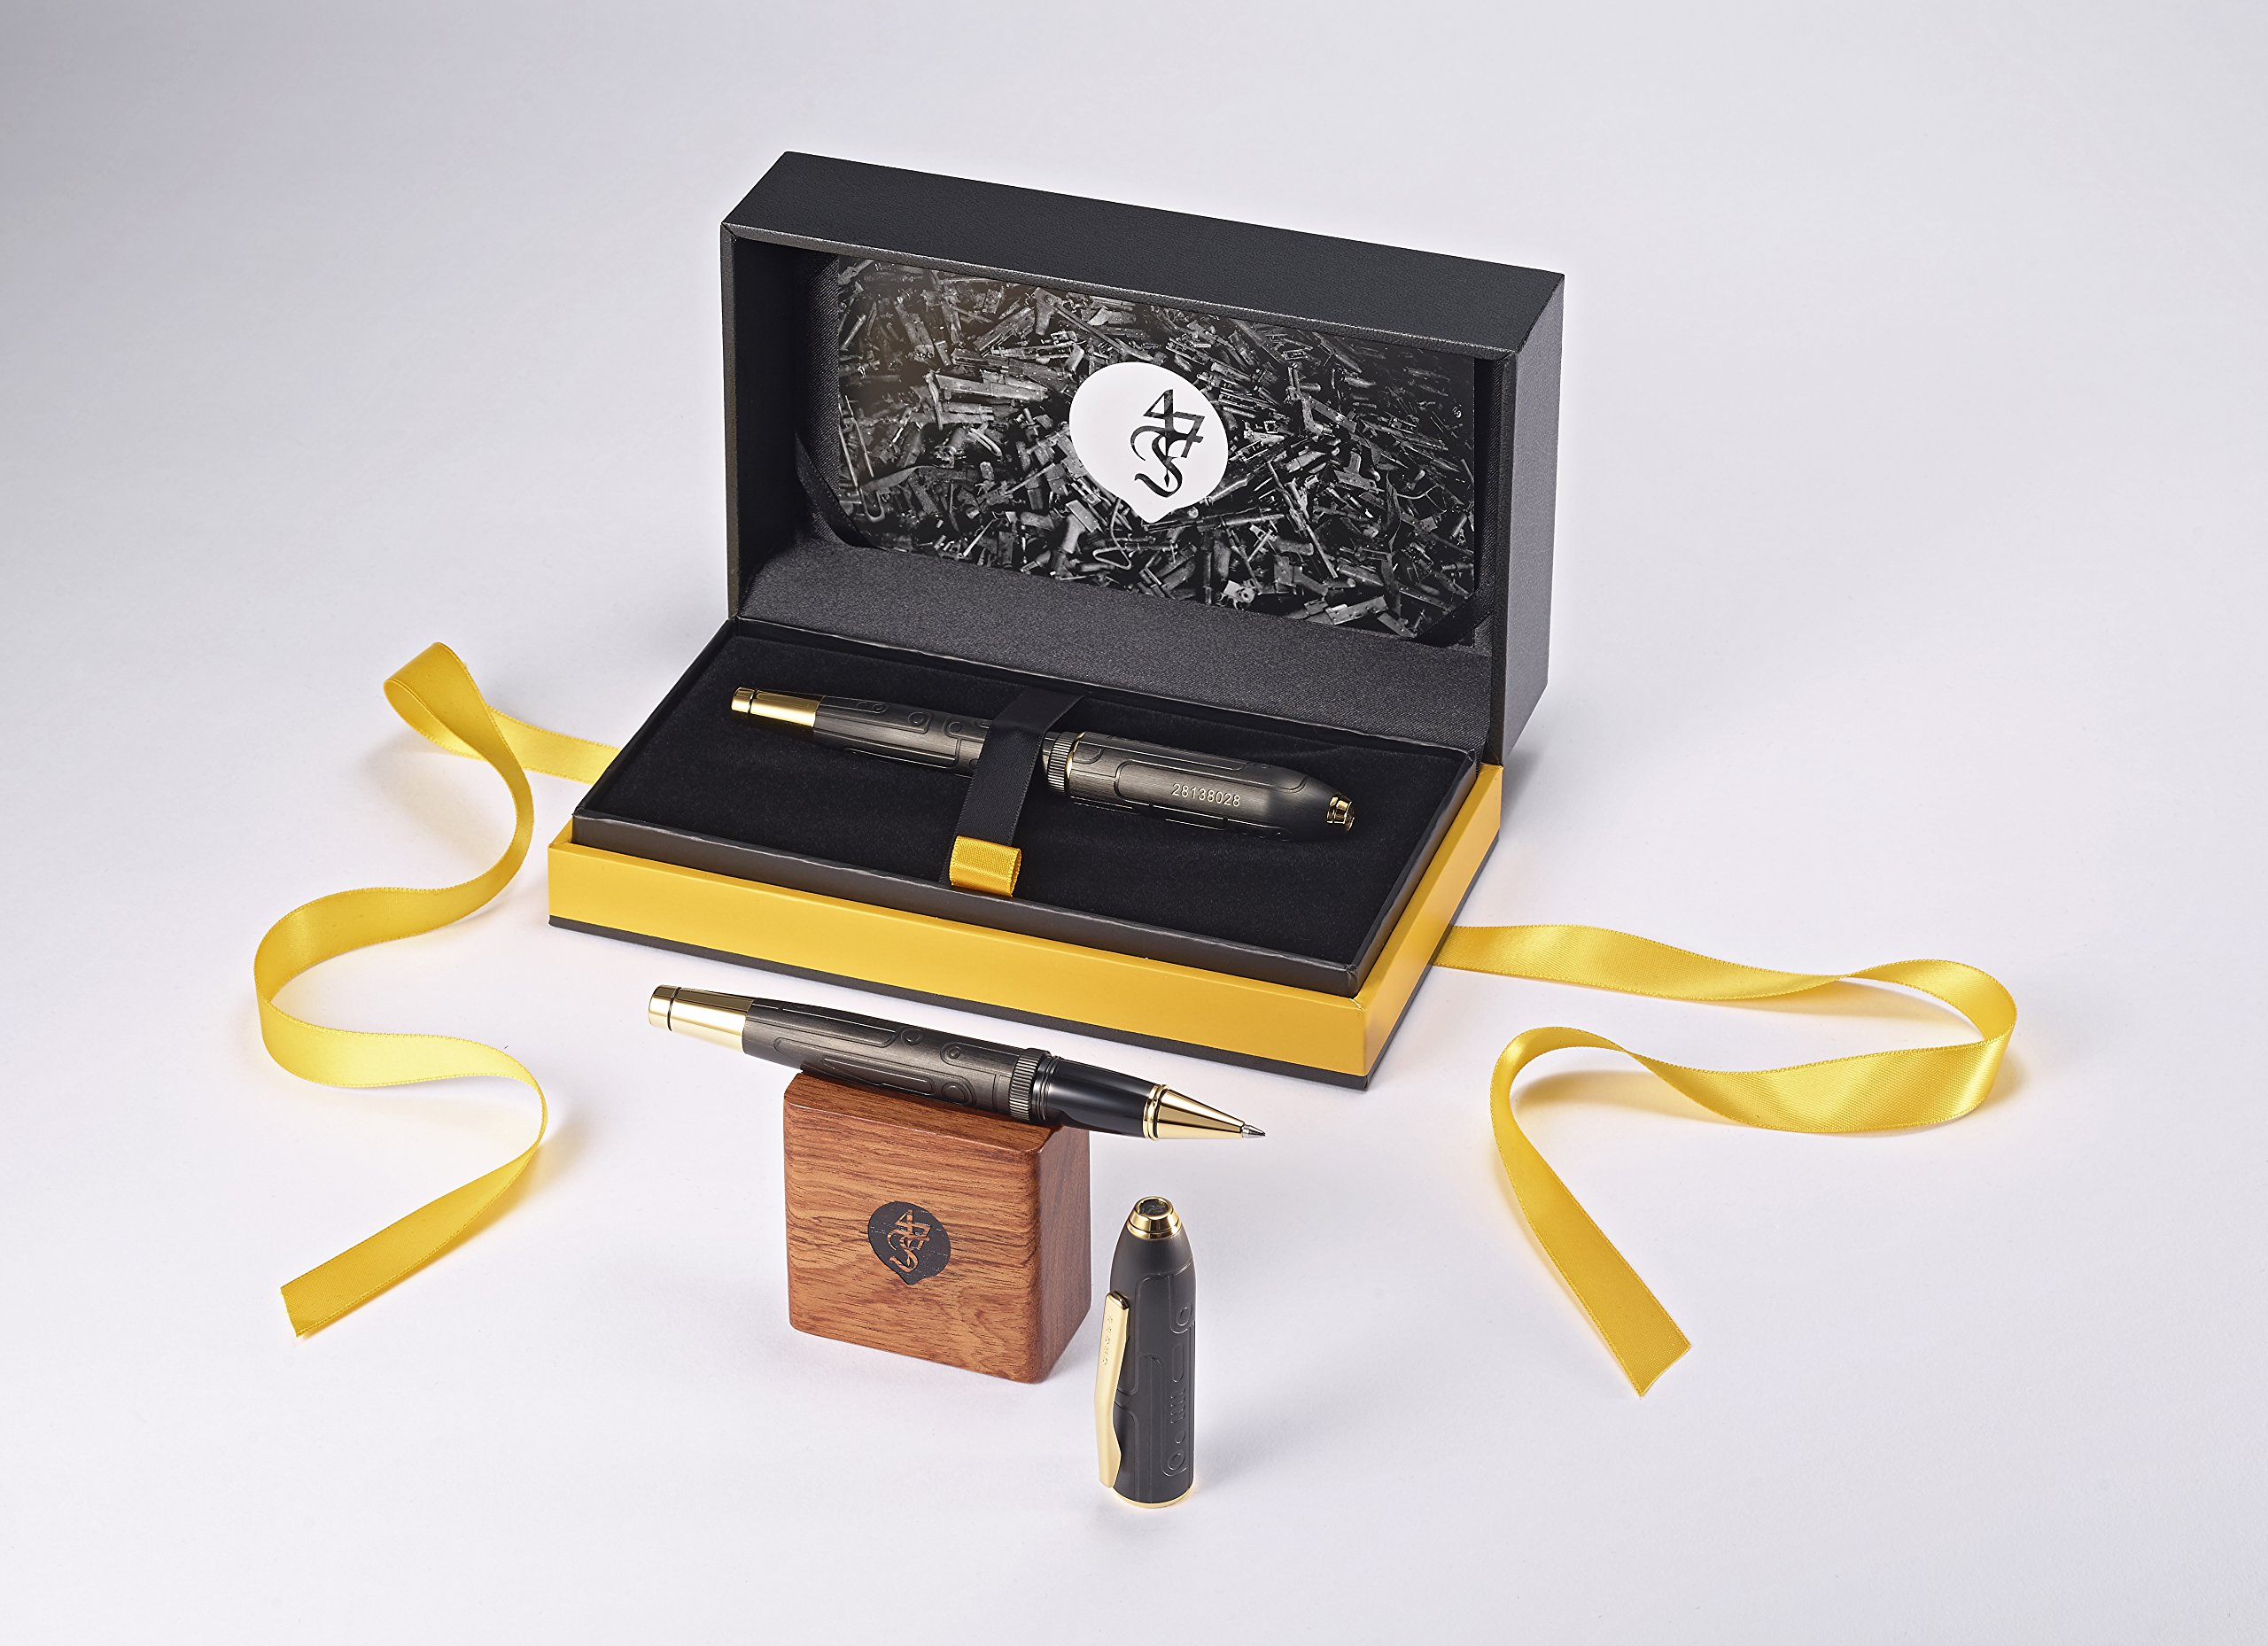 Cross Peerless Fonderie 47 Collector's Edition Matte Black PVD Selectip Rollerball Pen with 23KT Gold-Plated Appointments by Cross (Image #10)